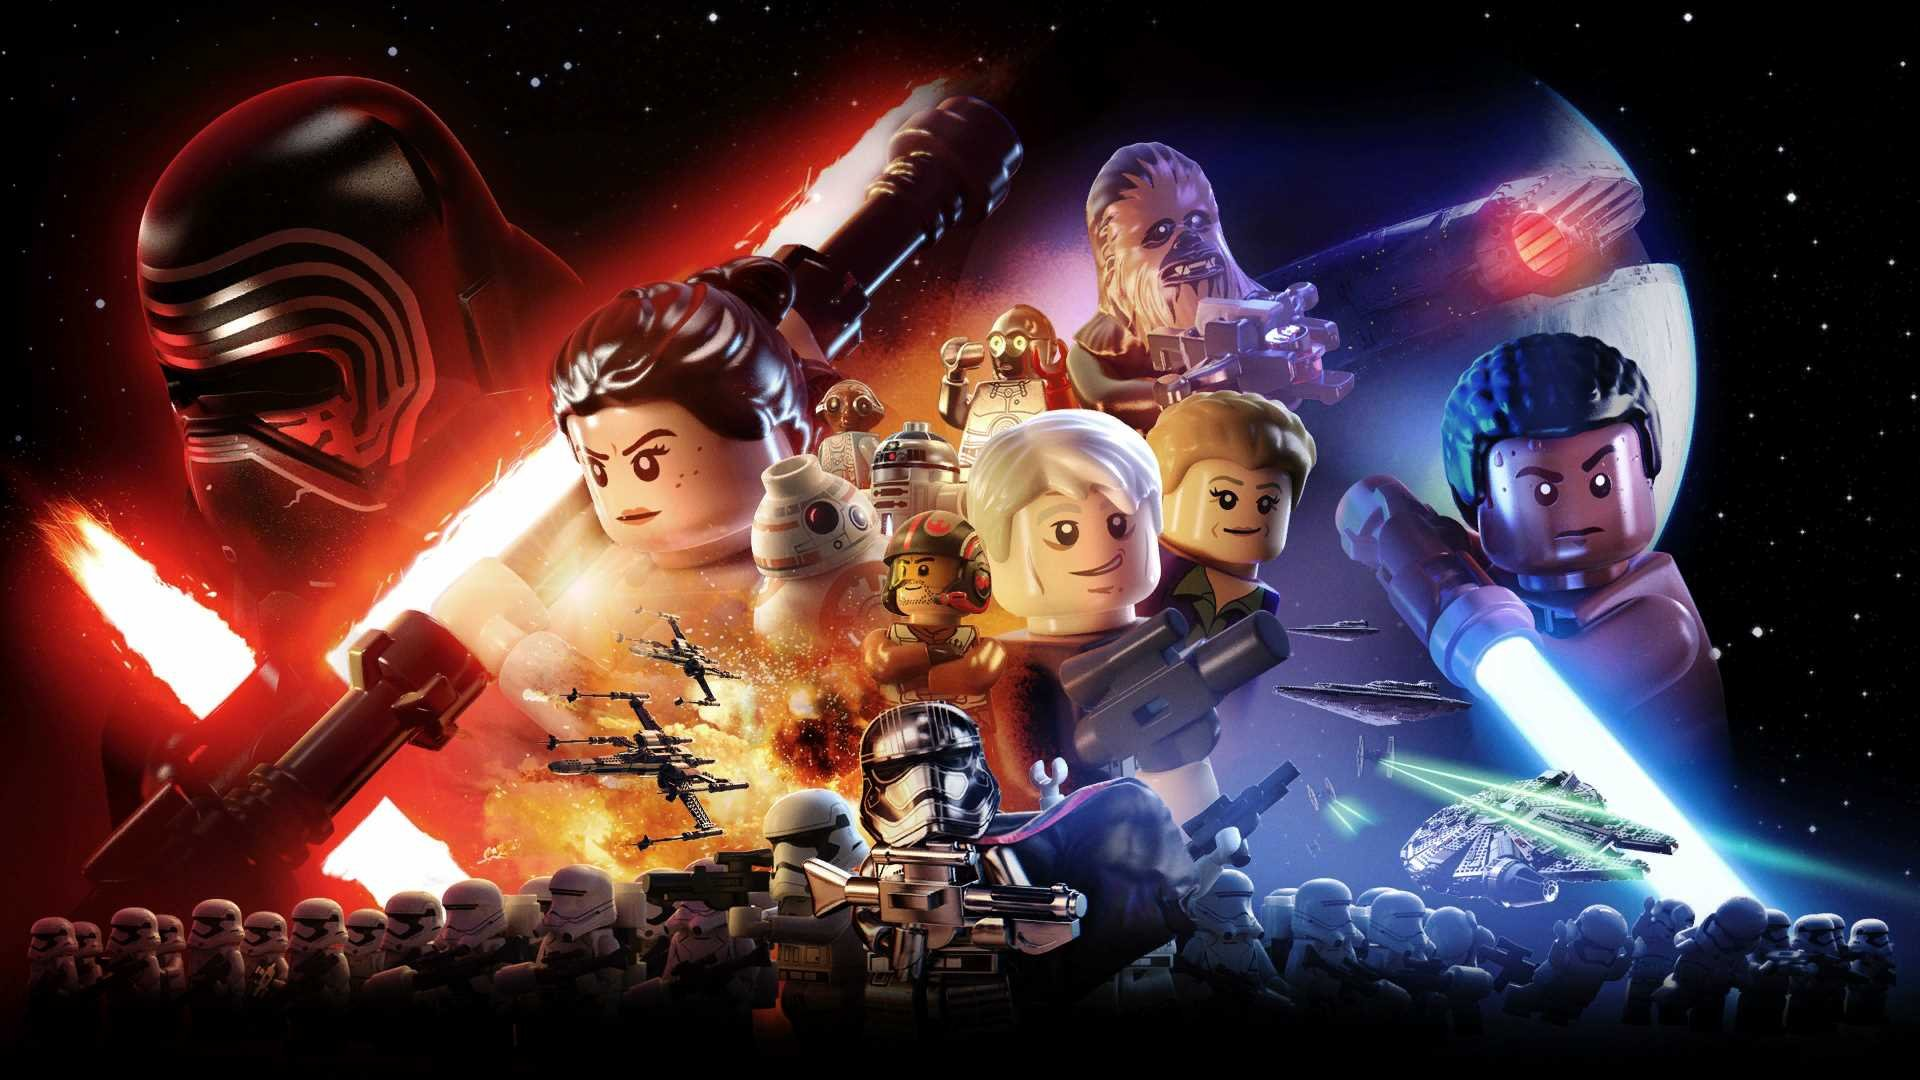 A promotional image for LEGO Star Wars The Force Awakens